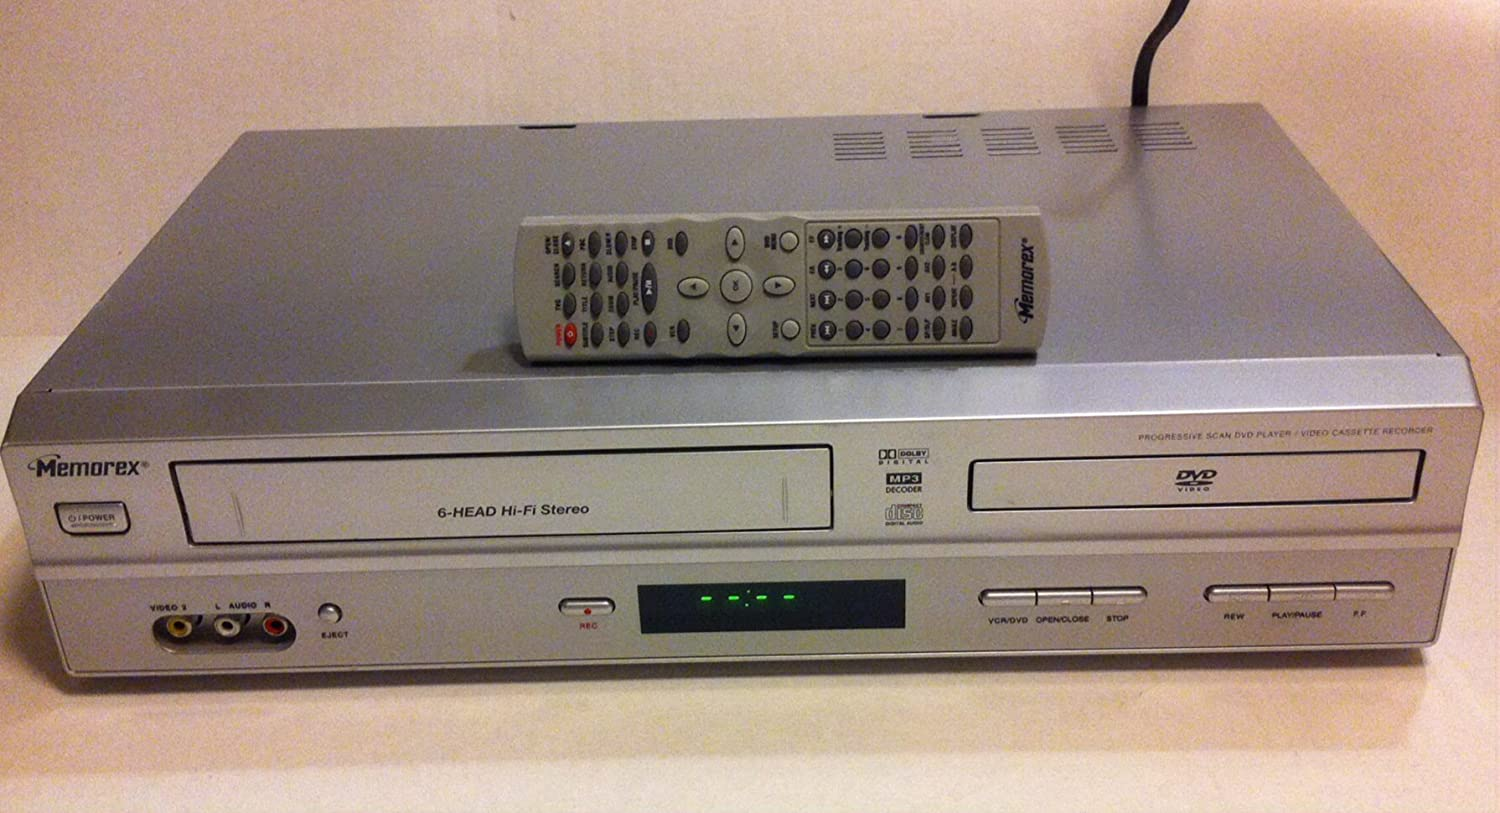 amazon com memorex 00934 refurbished dual deck dvd vcr player rh amazon com Memorex VHS Player Memorex TV